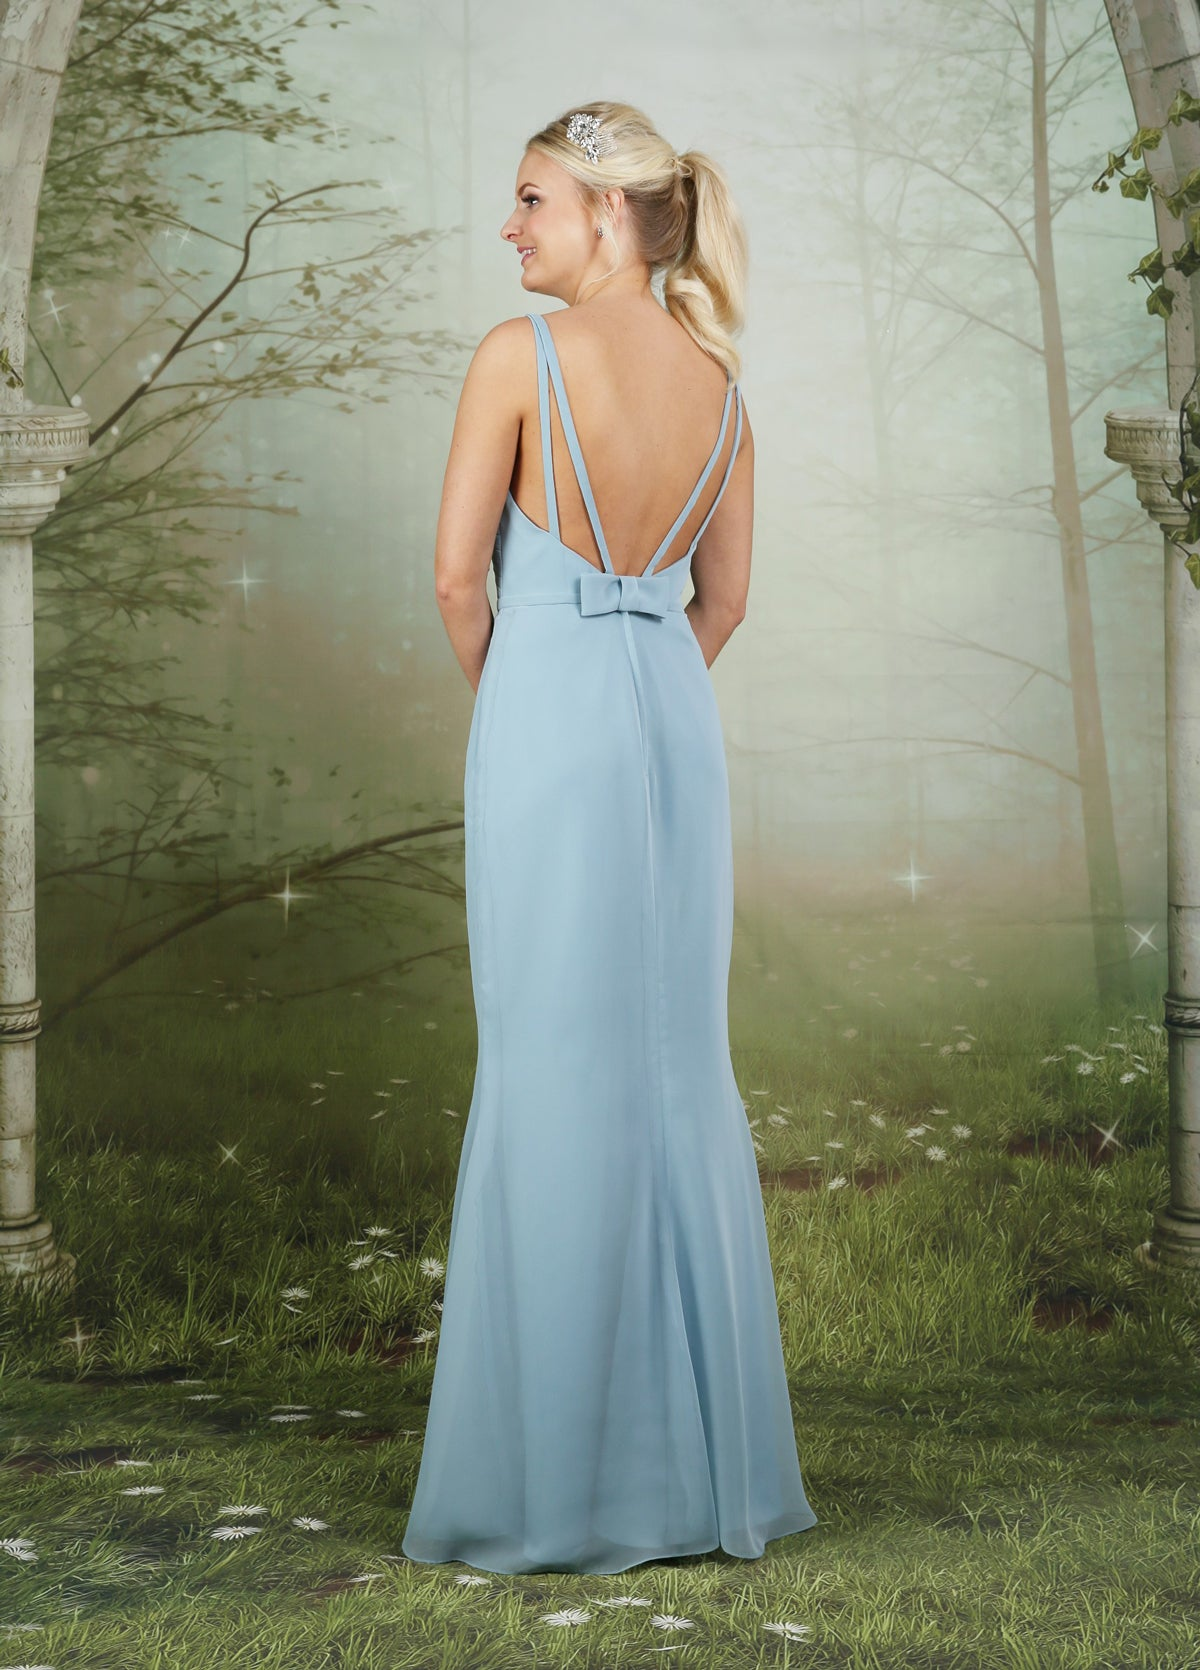 Chiffon bridesmaid dress with a pleated cross-over bodice